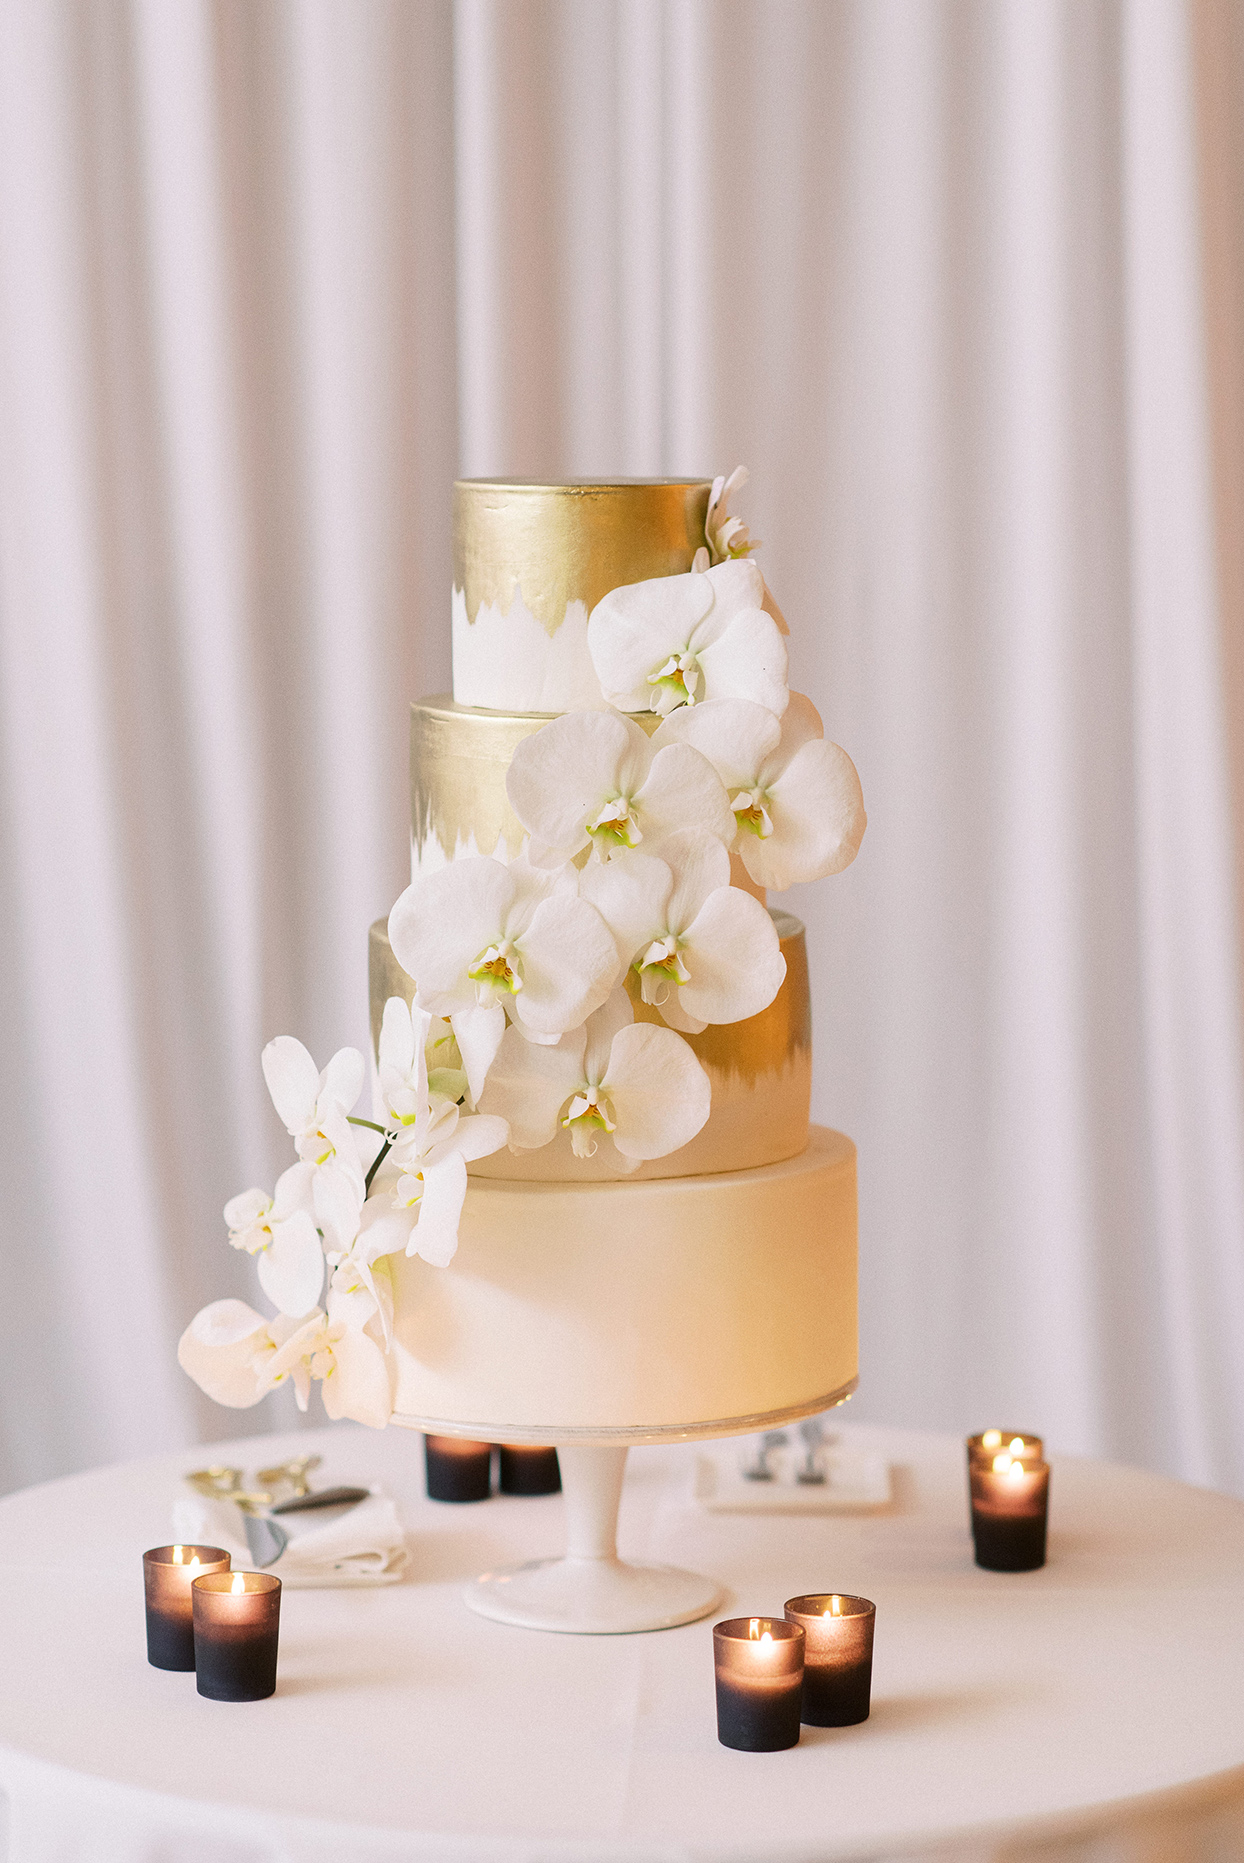 Wedding cake with three gold-topped layers on top of a tier iced in white